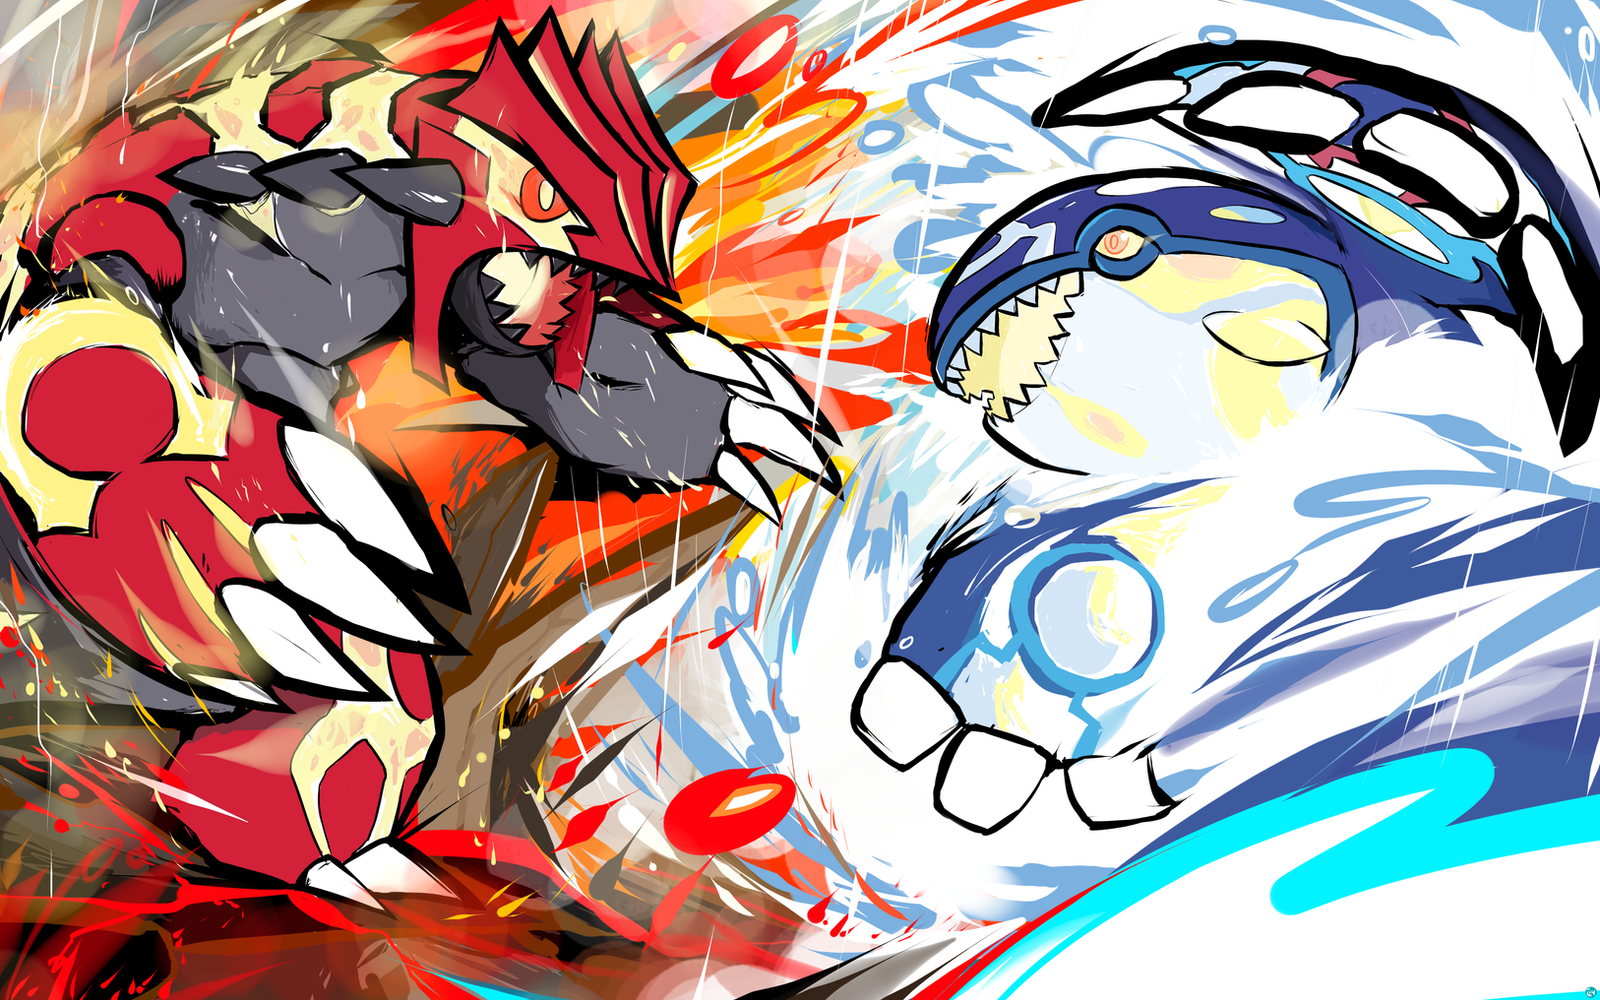 Primal groudon primal kyogre by ishmam on deviantart - Pictures of groudon and kyogre ...